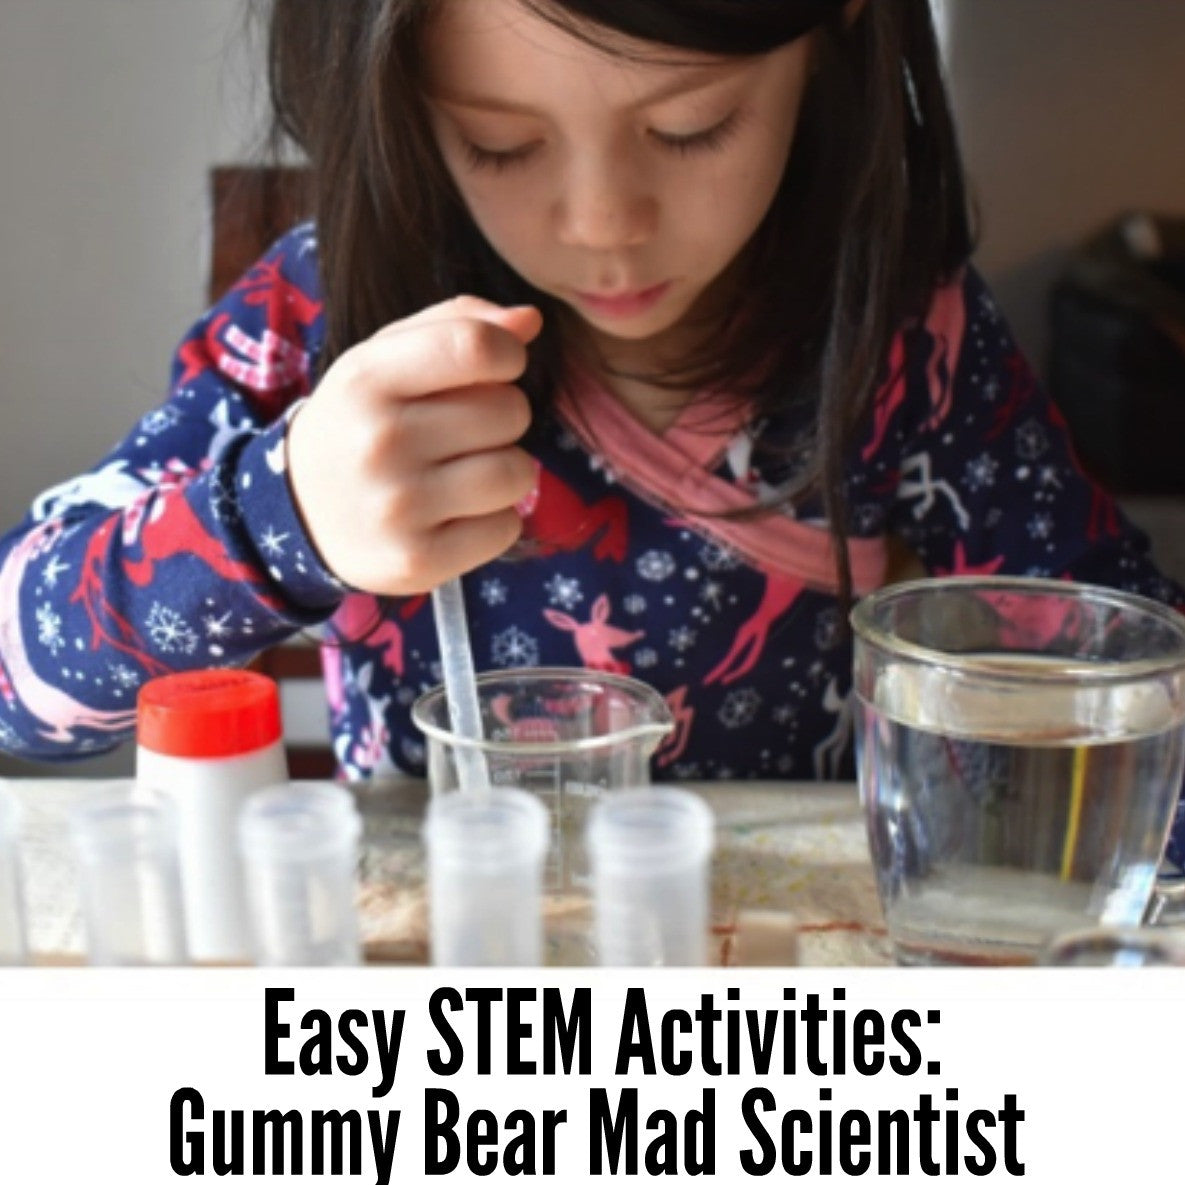 Easy STEM Activities: Gummy Bear Mad Scientist